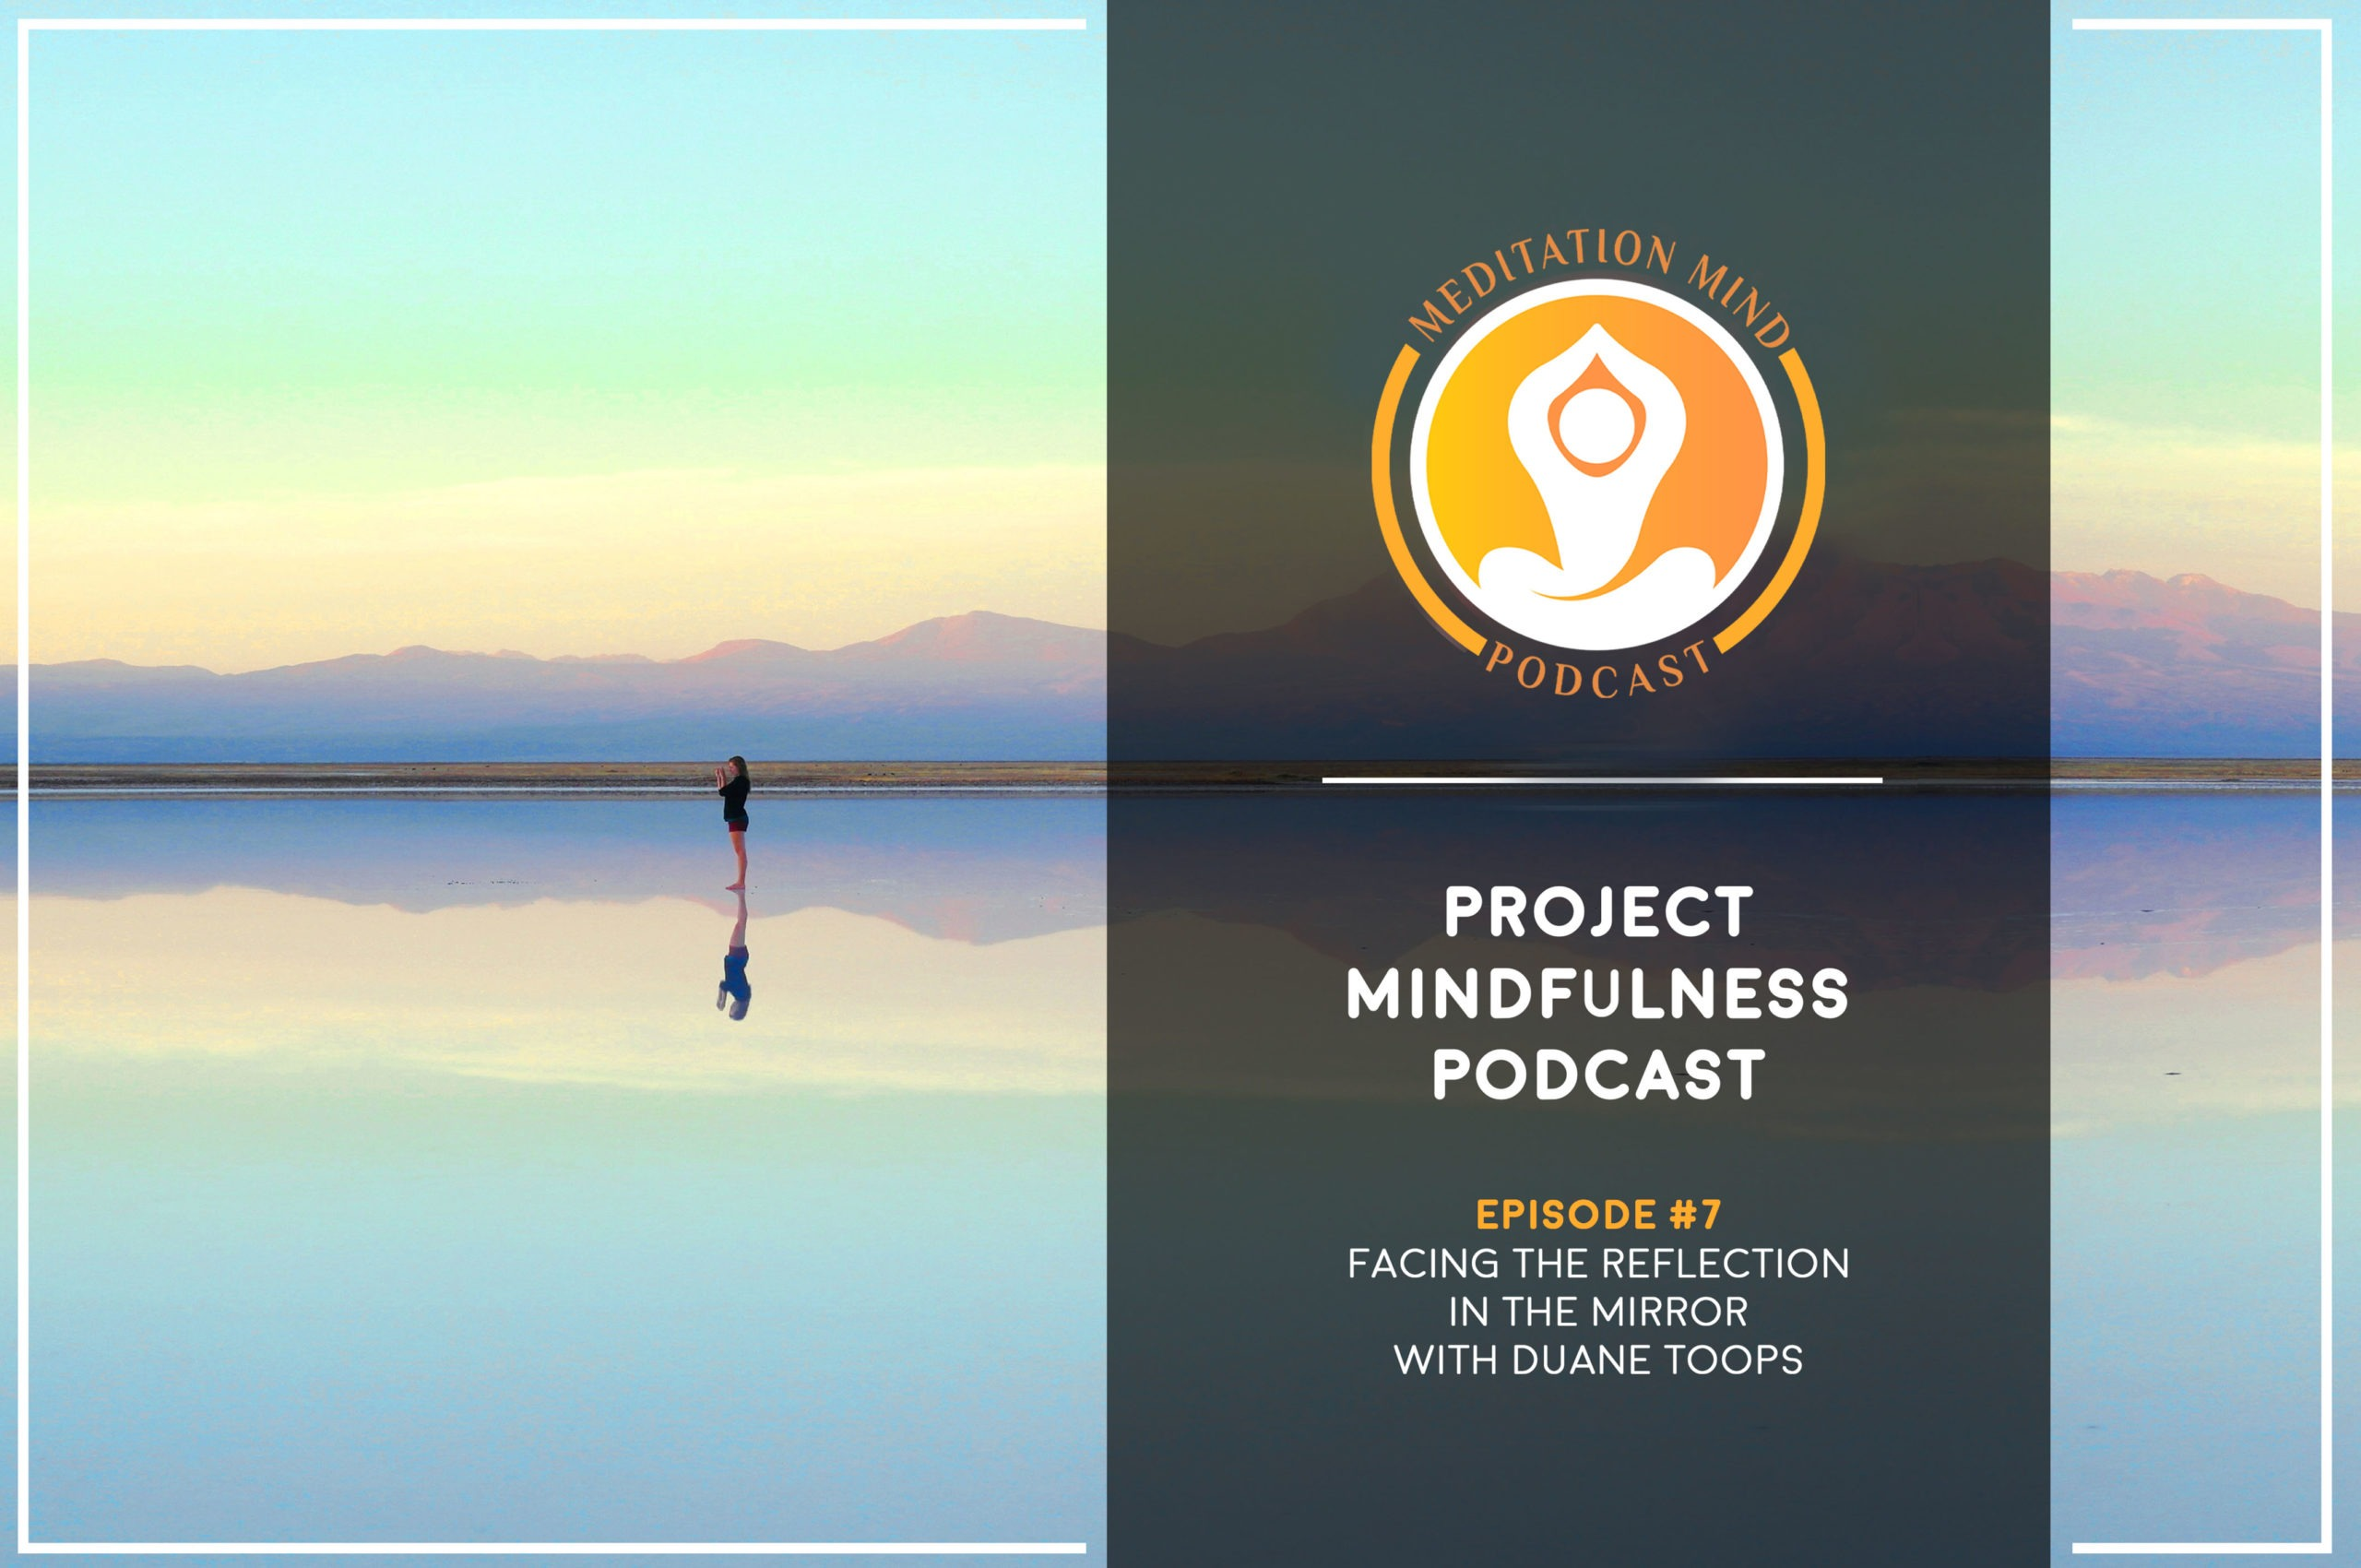 Podcast episode with Duane Toops talking about facing ourselves in the mirror and looking honestly at ourselves